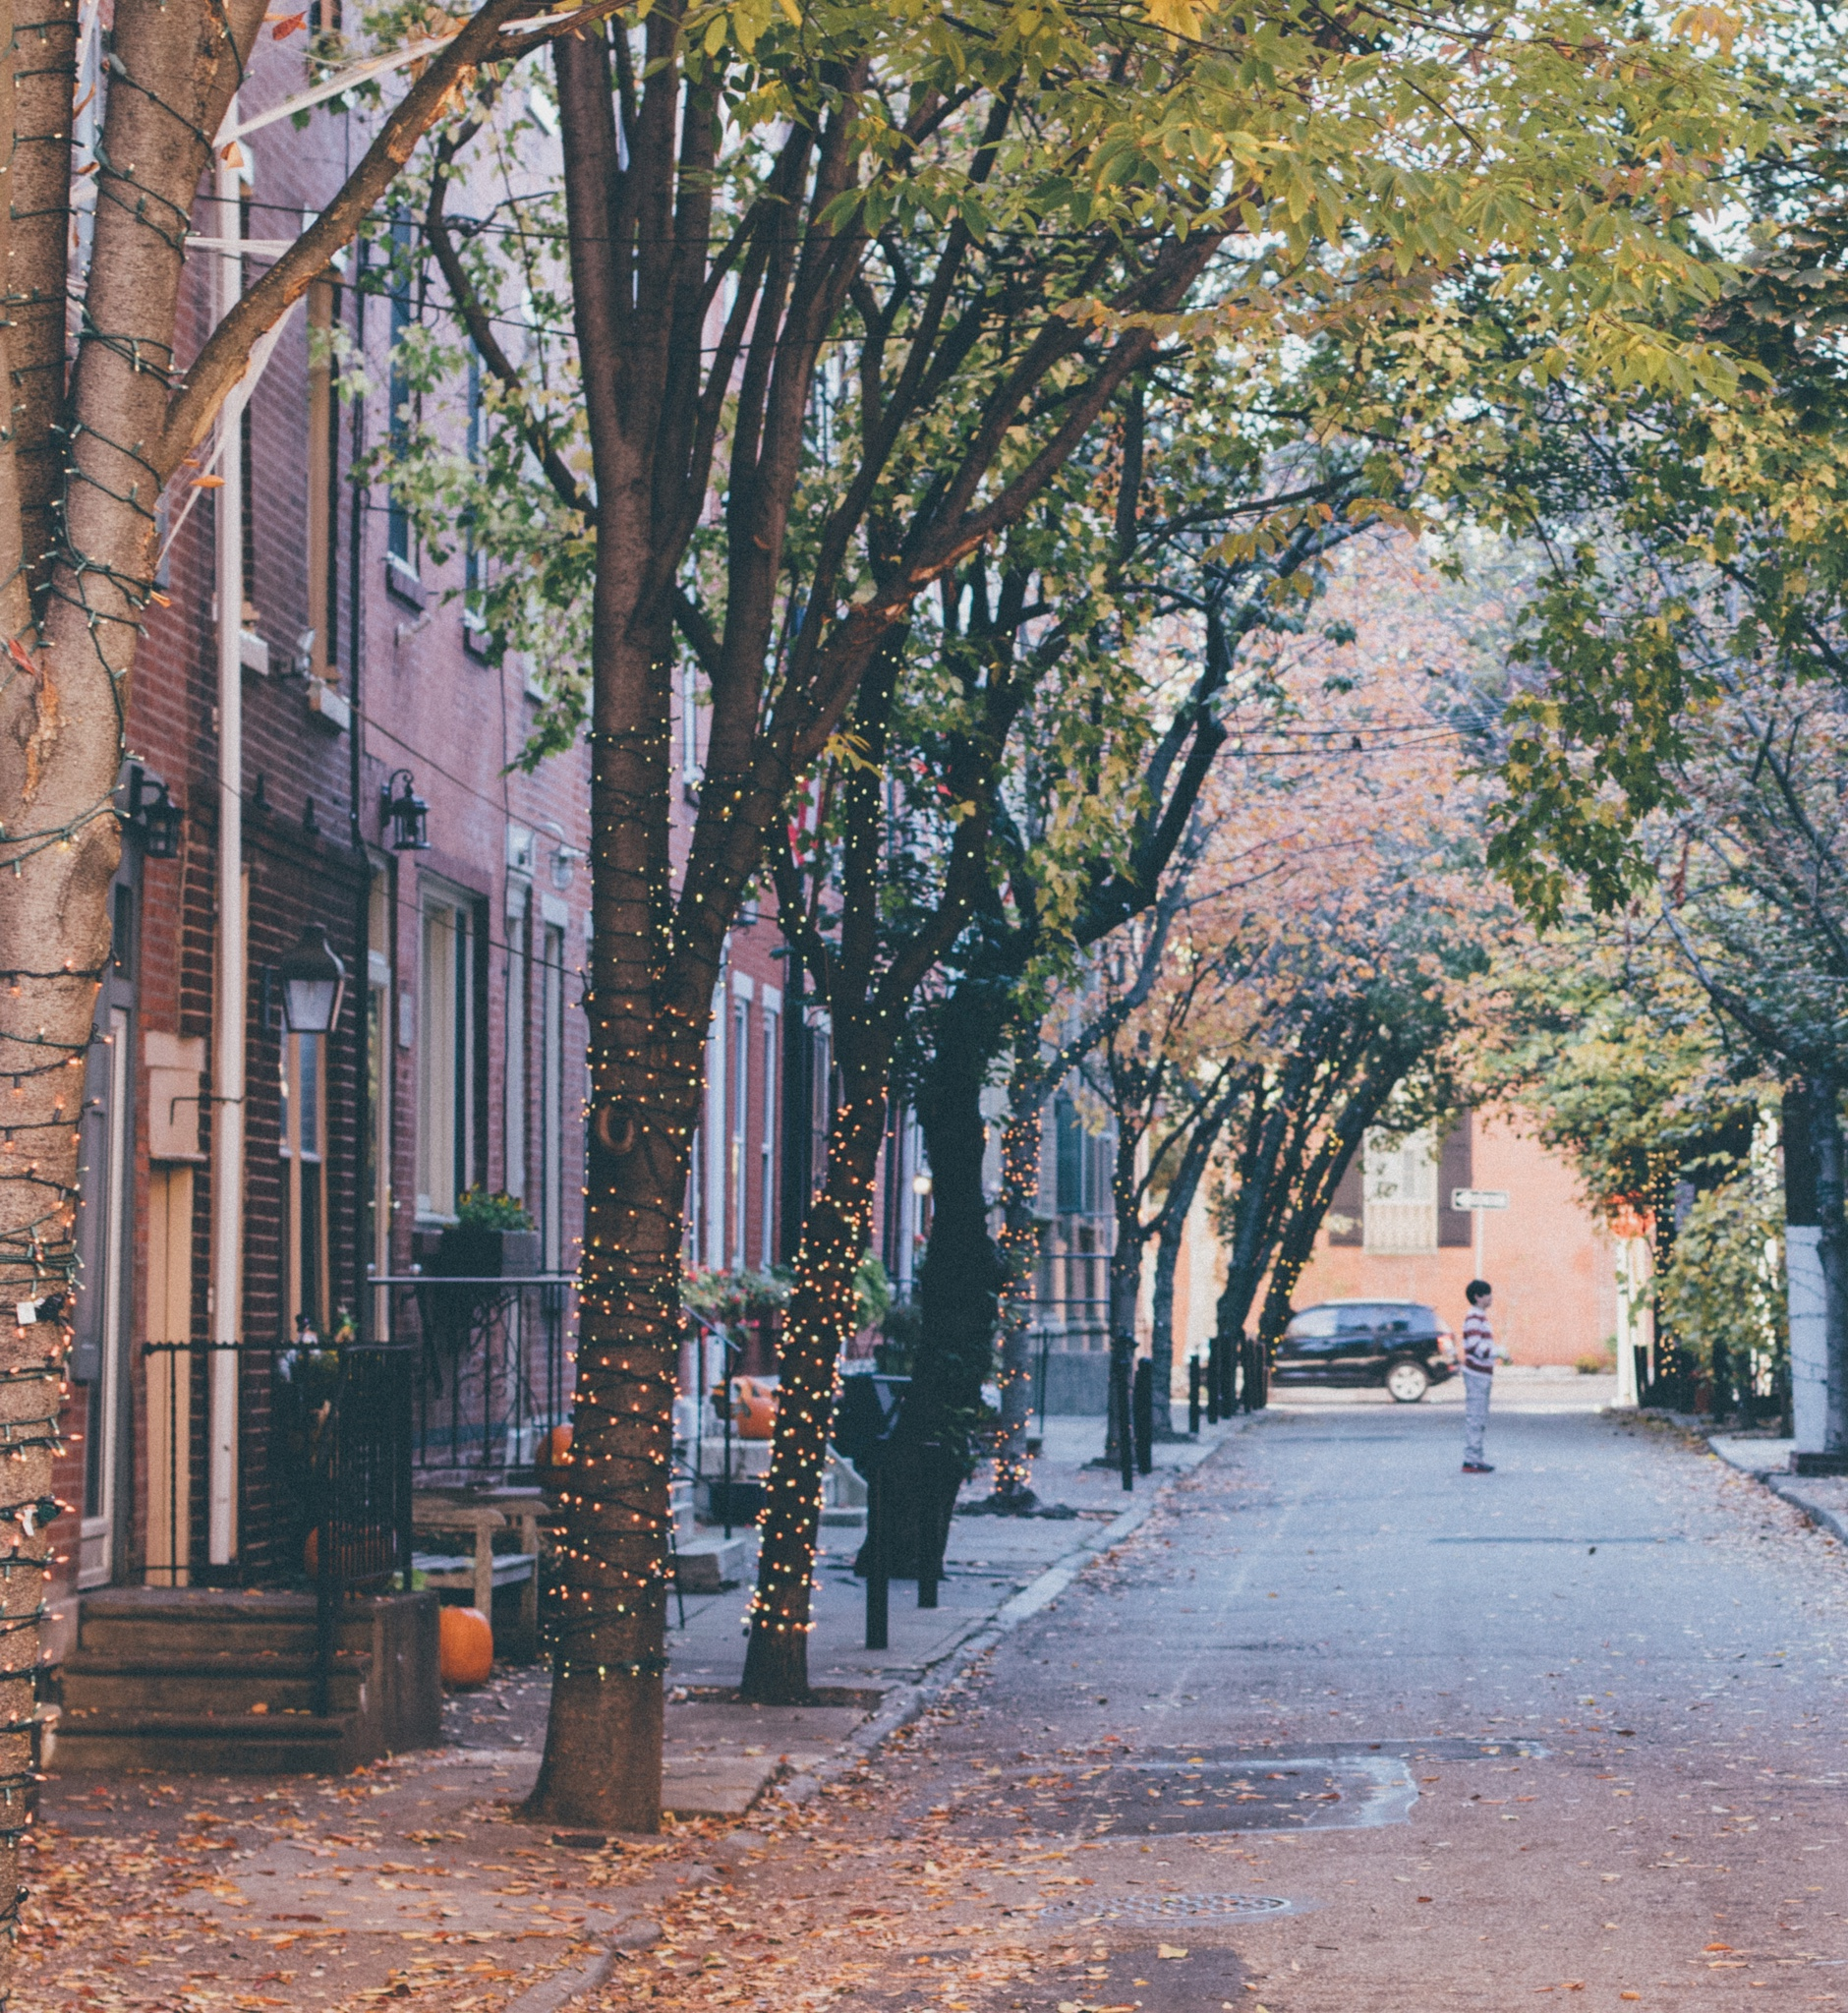 A quaint neighborhood street in Philadelphia.